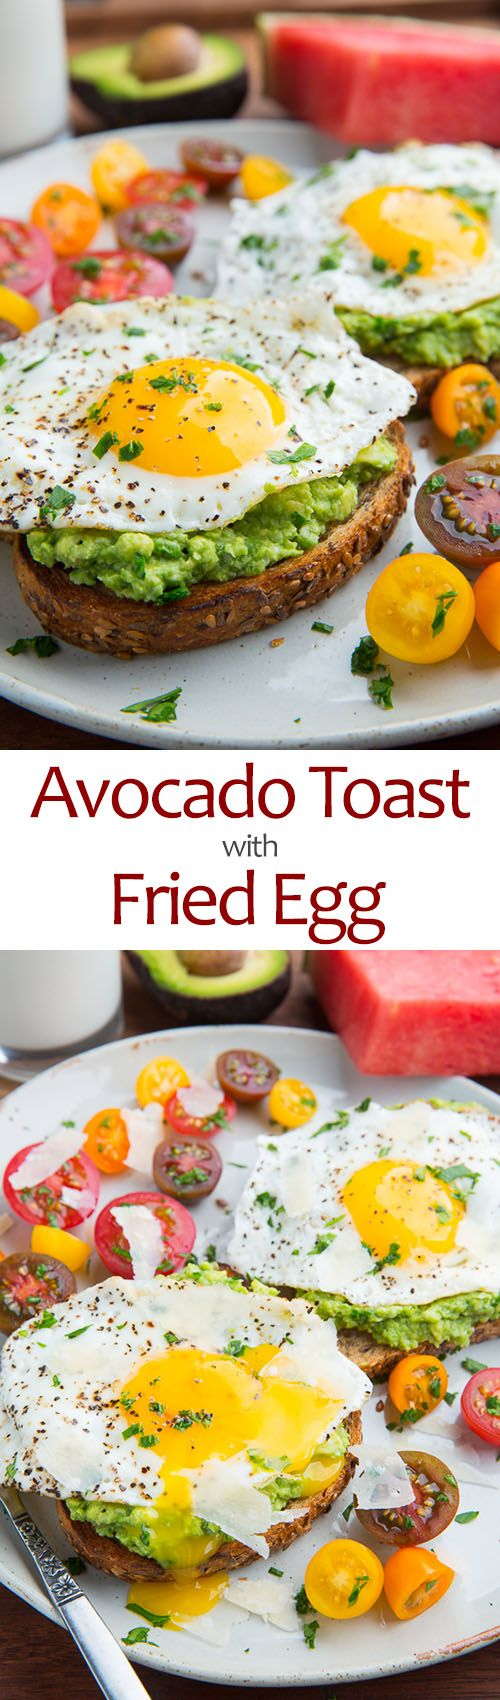 Avocado Breakfast Pizza With Fried Egg Recipe — Dishmaps